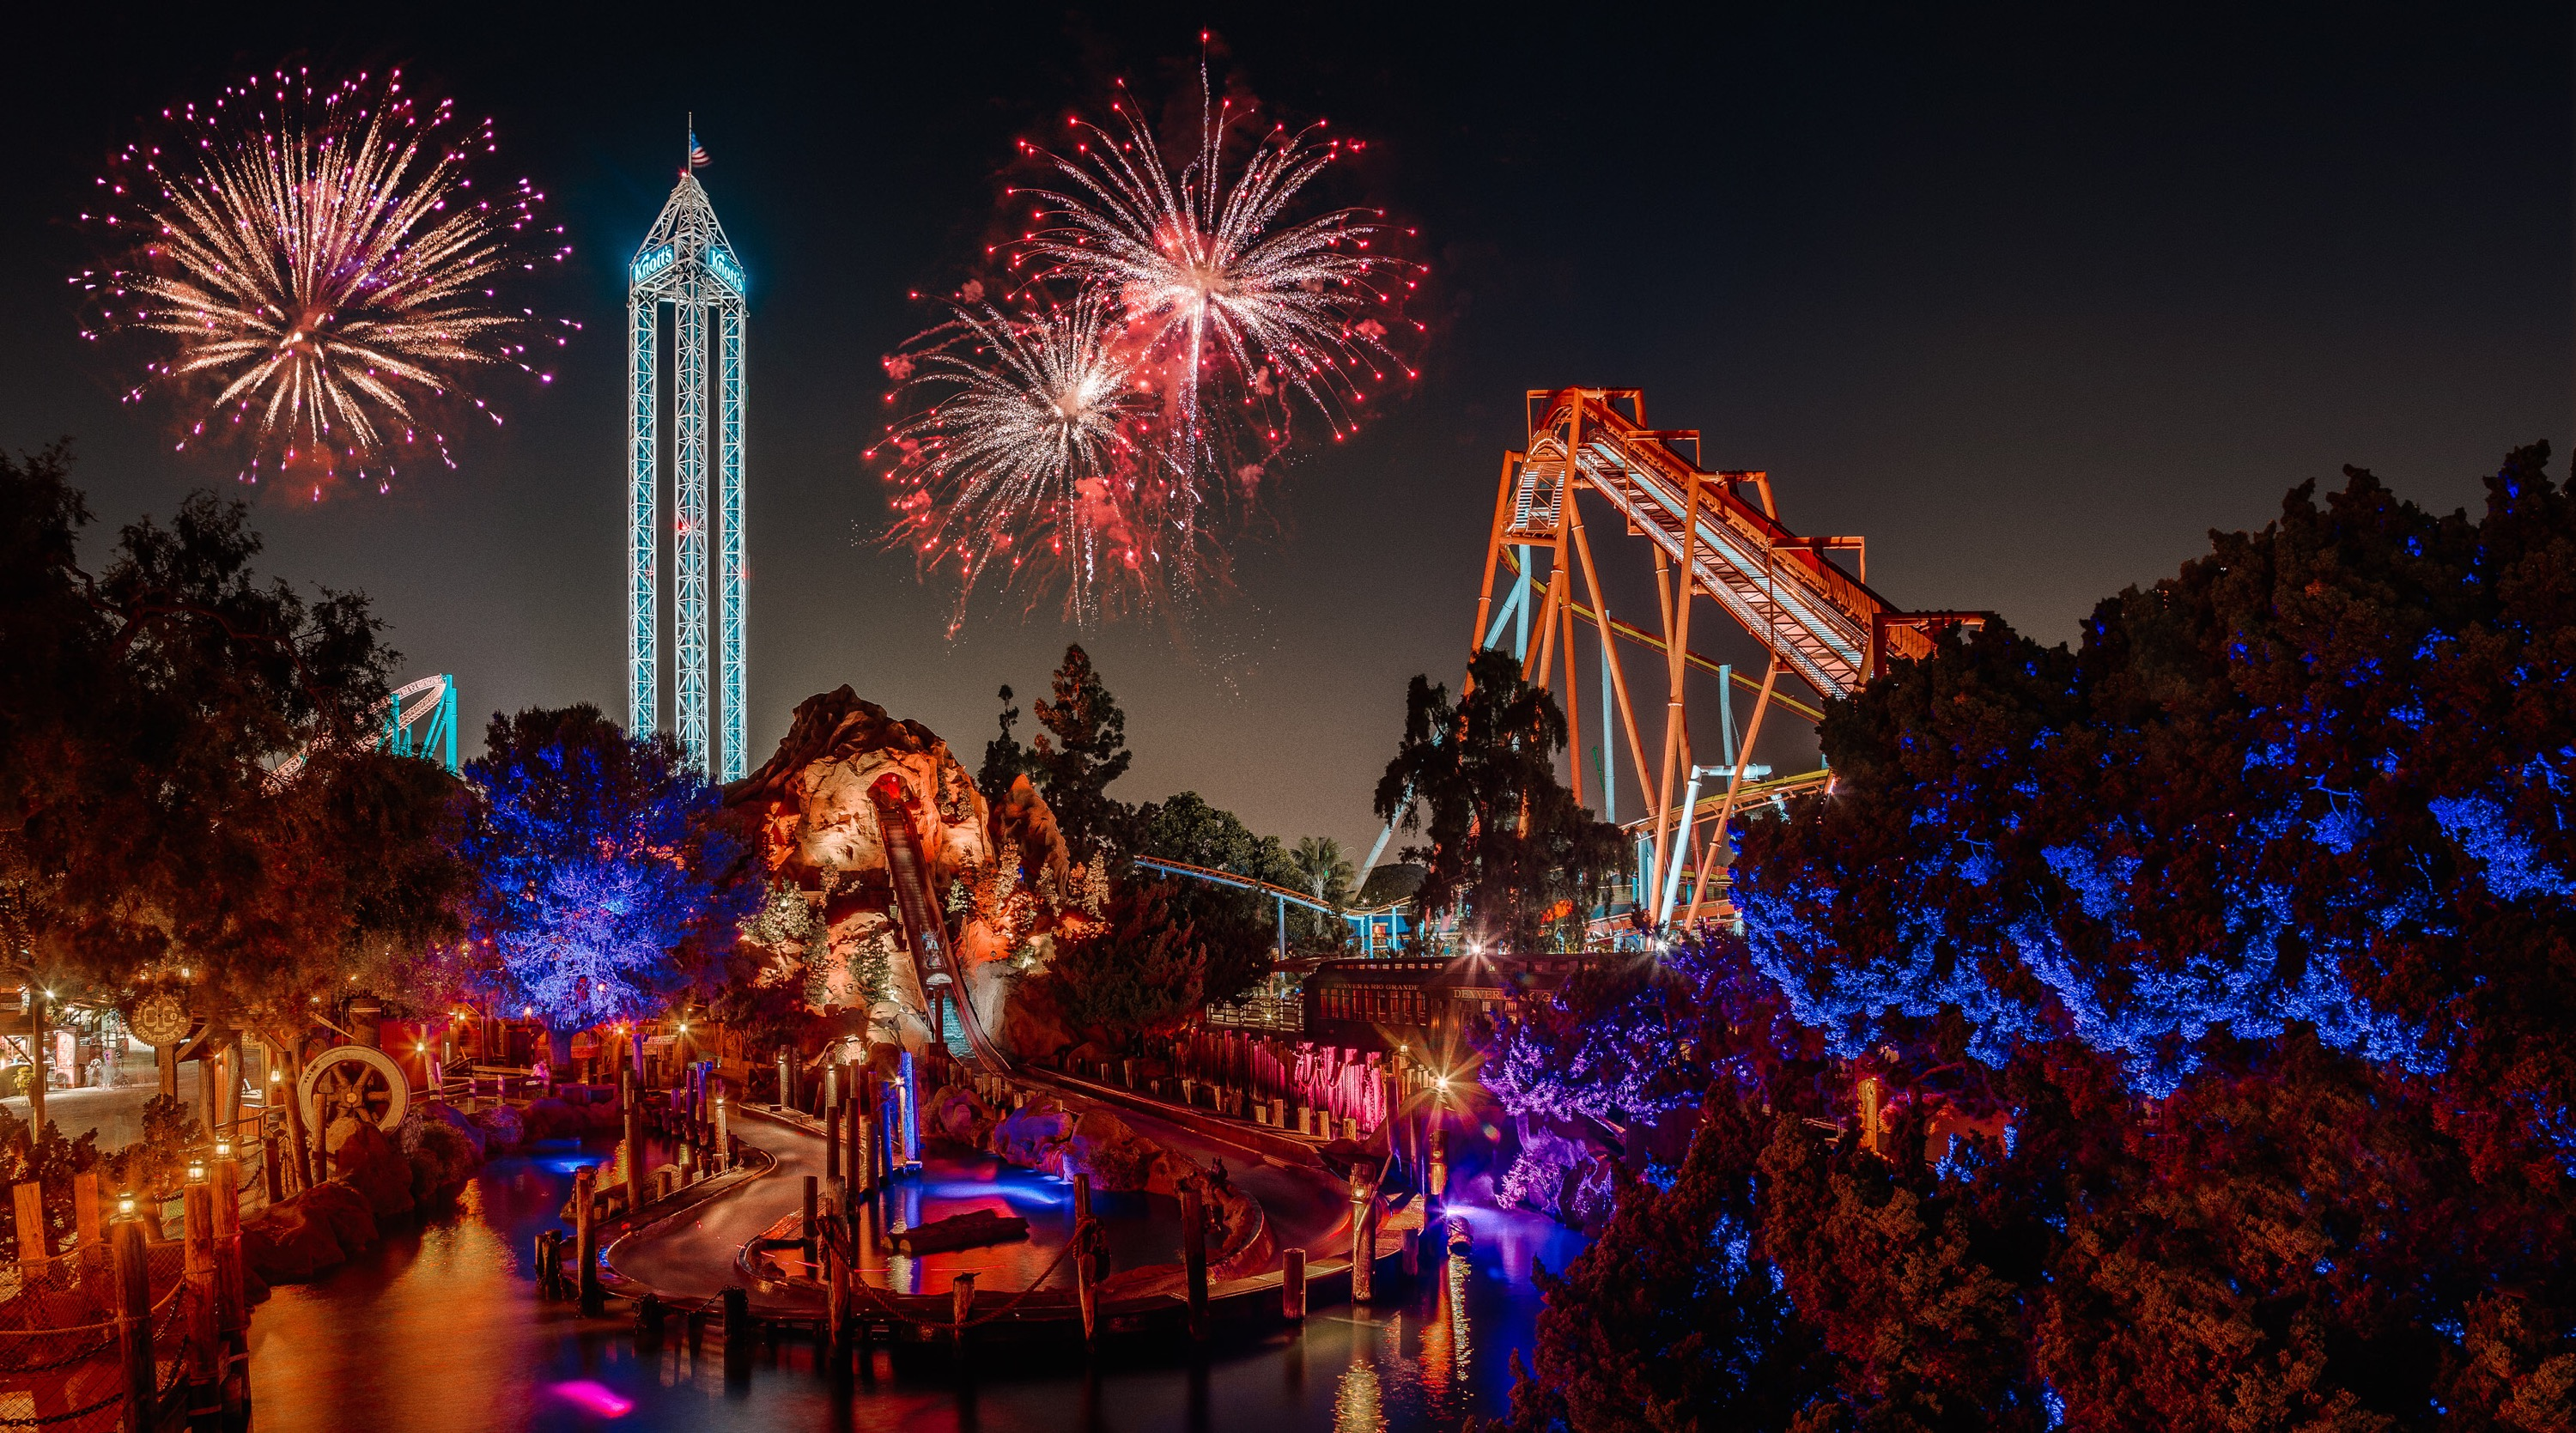 Tivoli Christmas Rides Behind The Thrills | Knott's Berry Farm Announces 4th Of